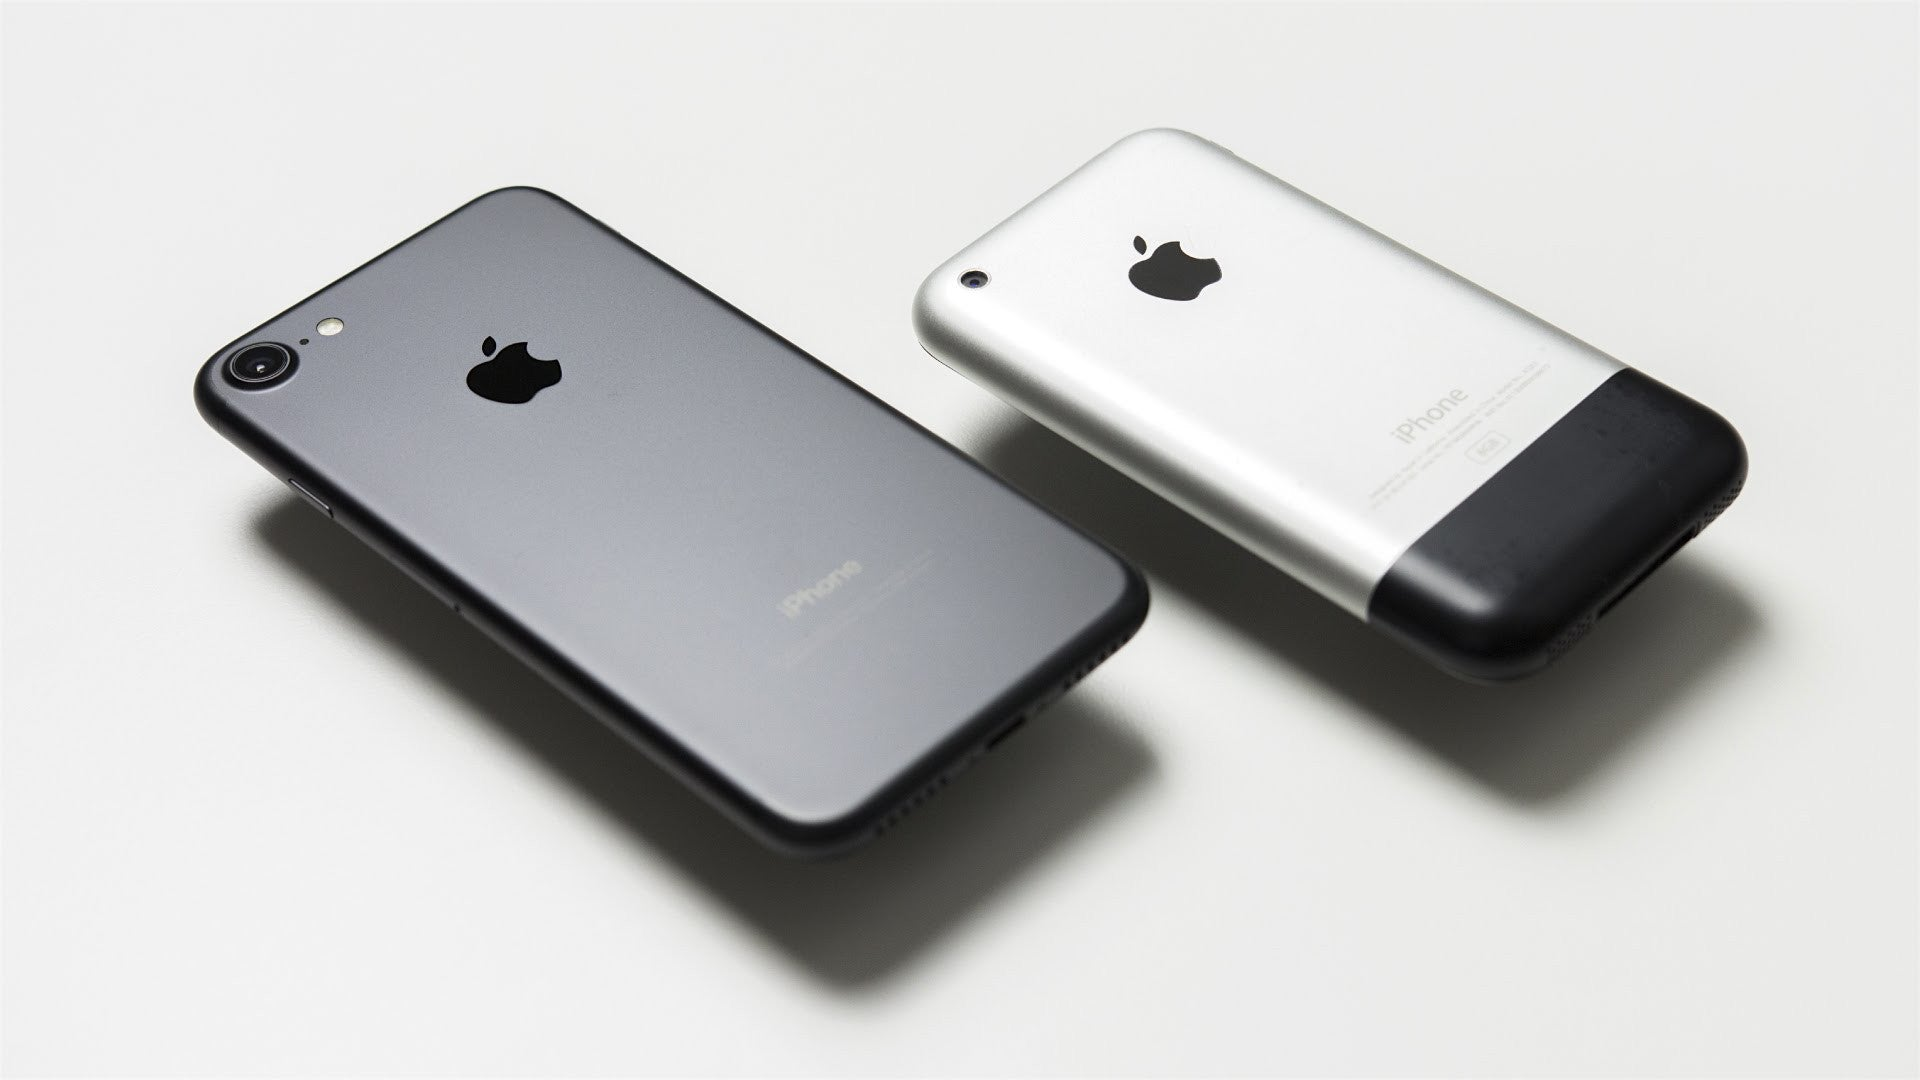 Comparing the original iPhone to the iPhone 7 - just how far has it come?